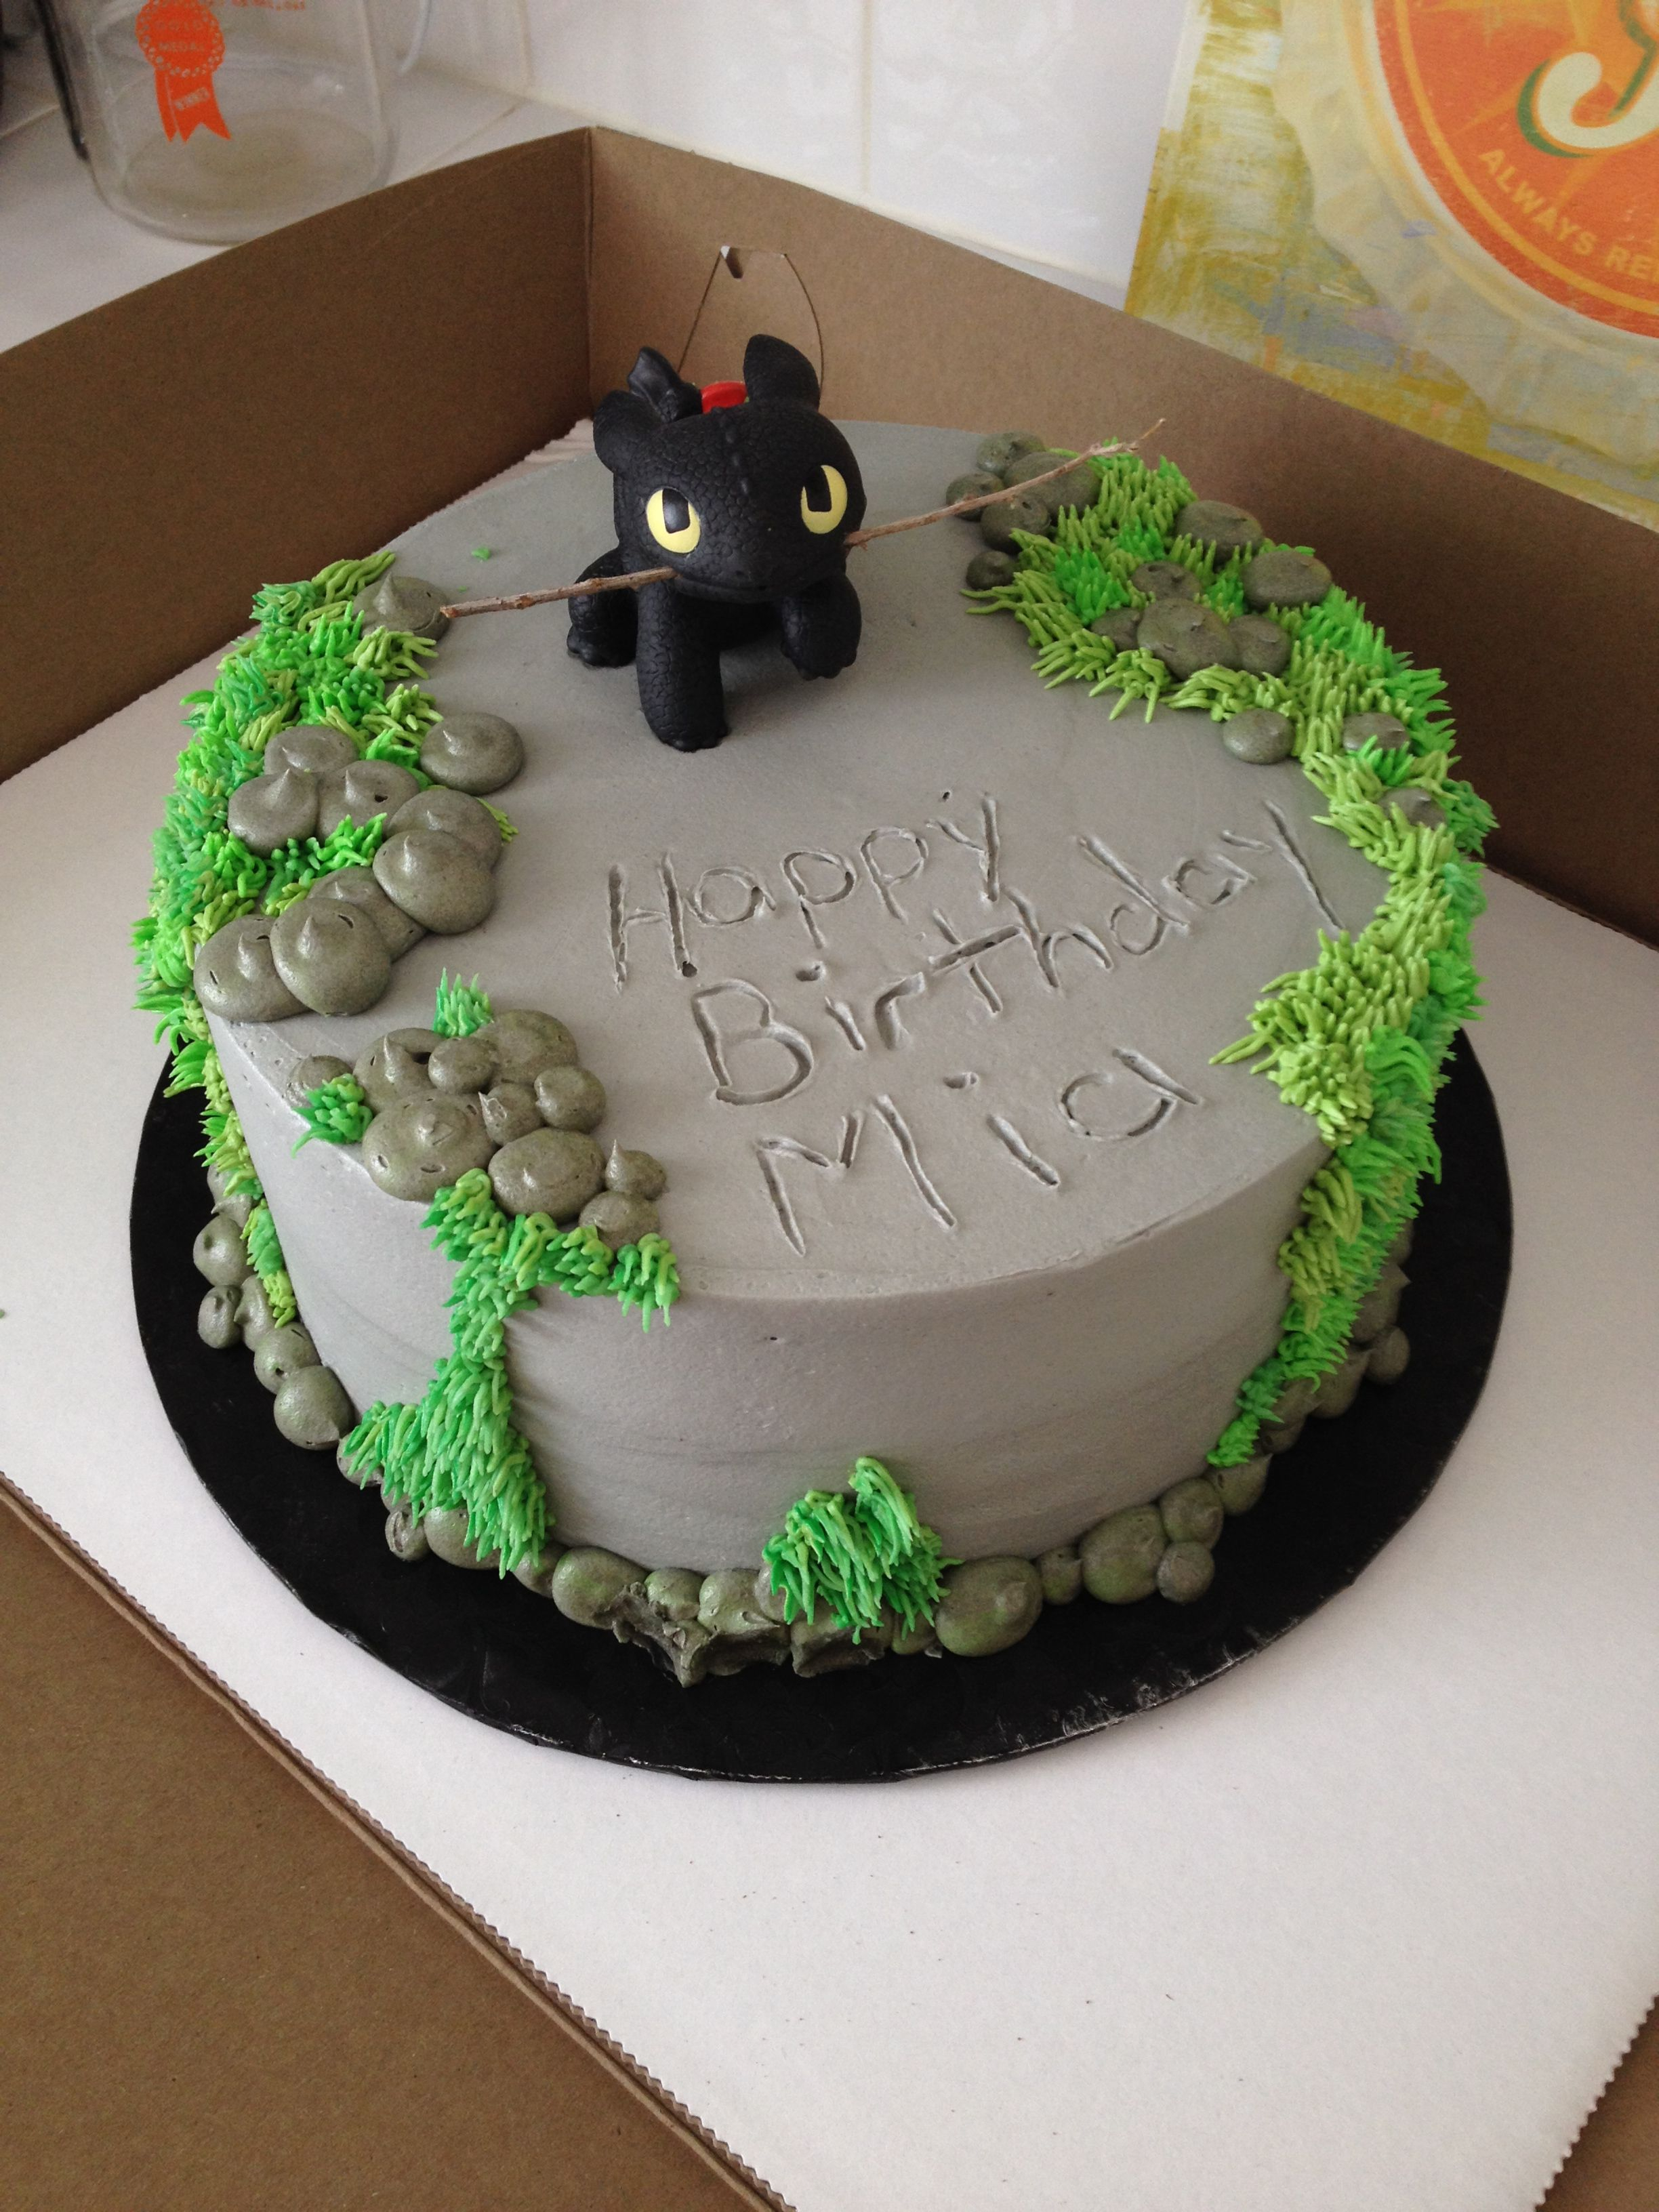 How To Train Your Dragon Birthday Cake This Would Be Easy To Do With Any Toy Theme How To Train Your